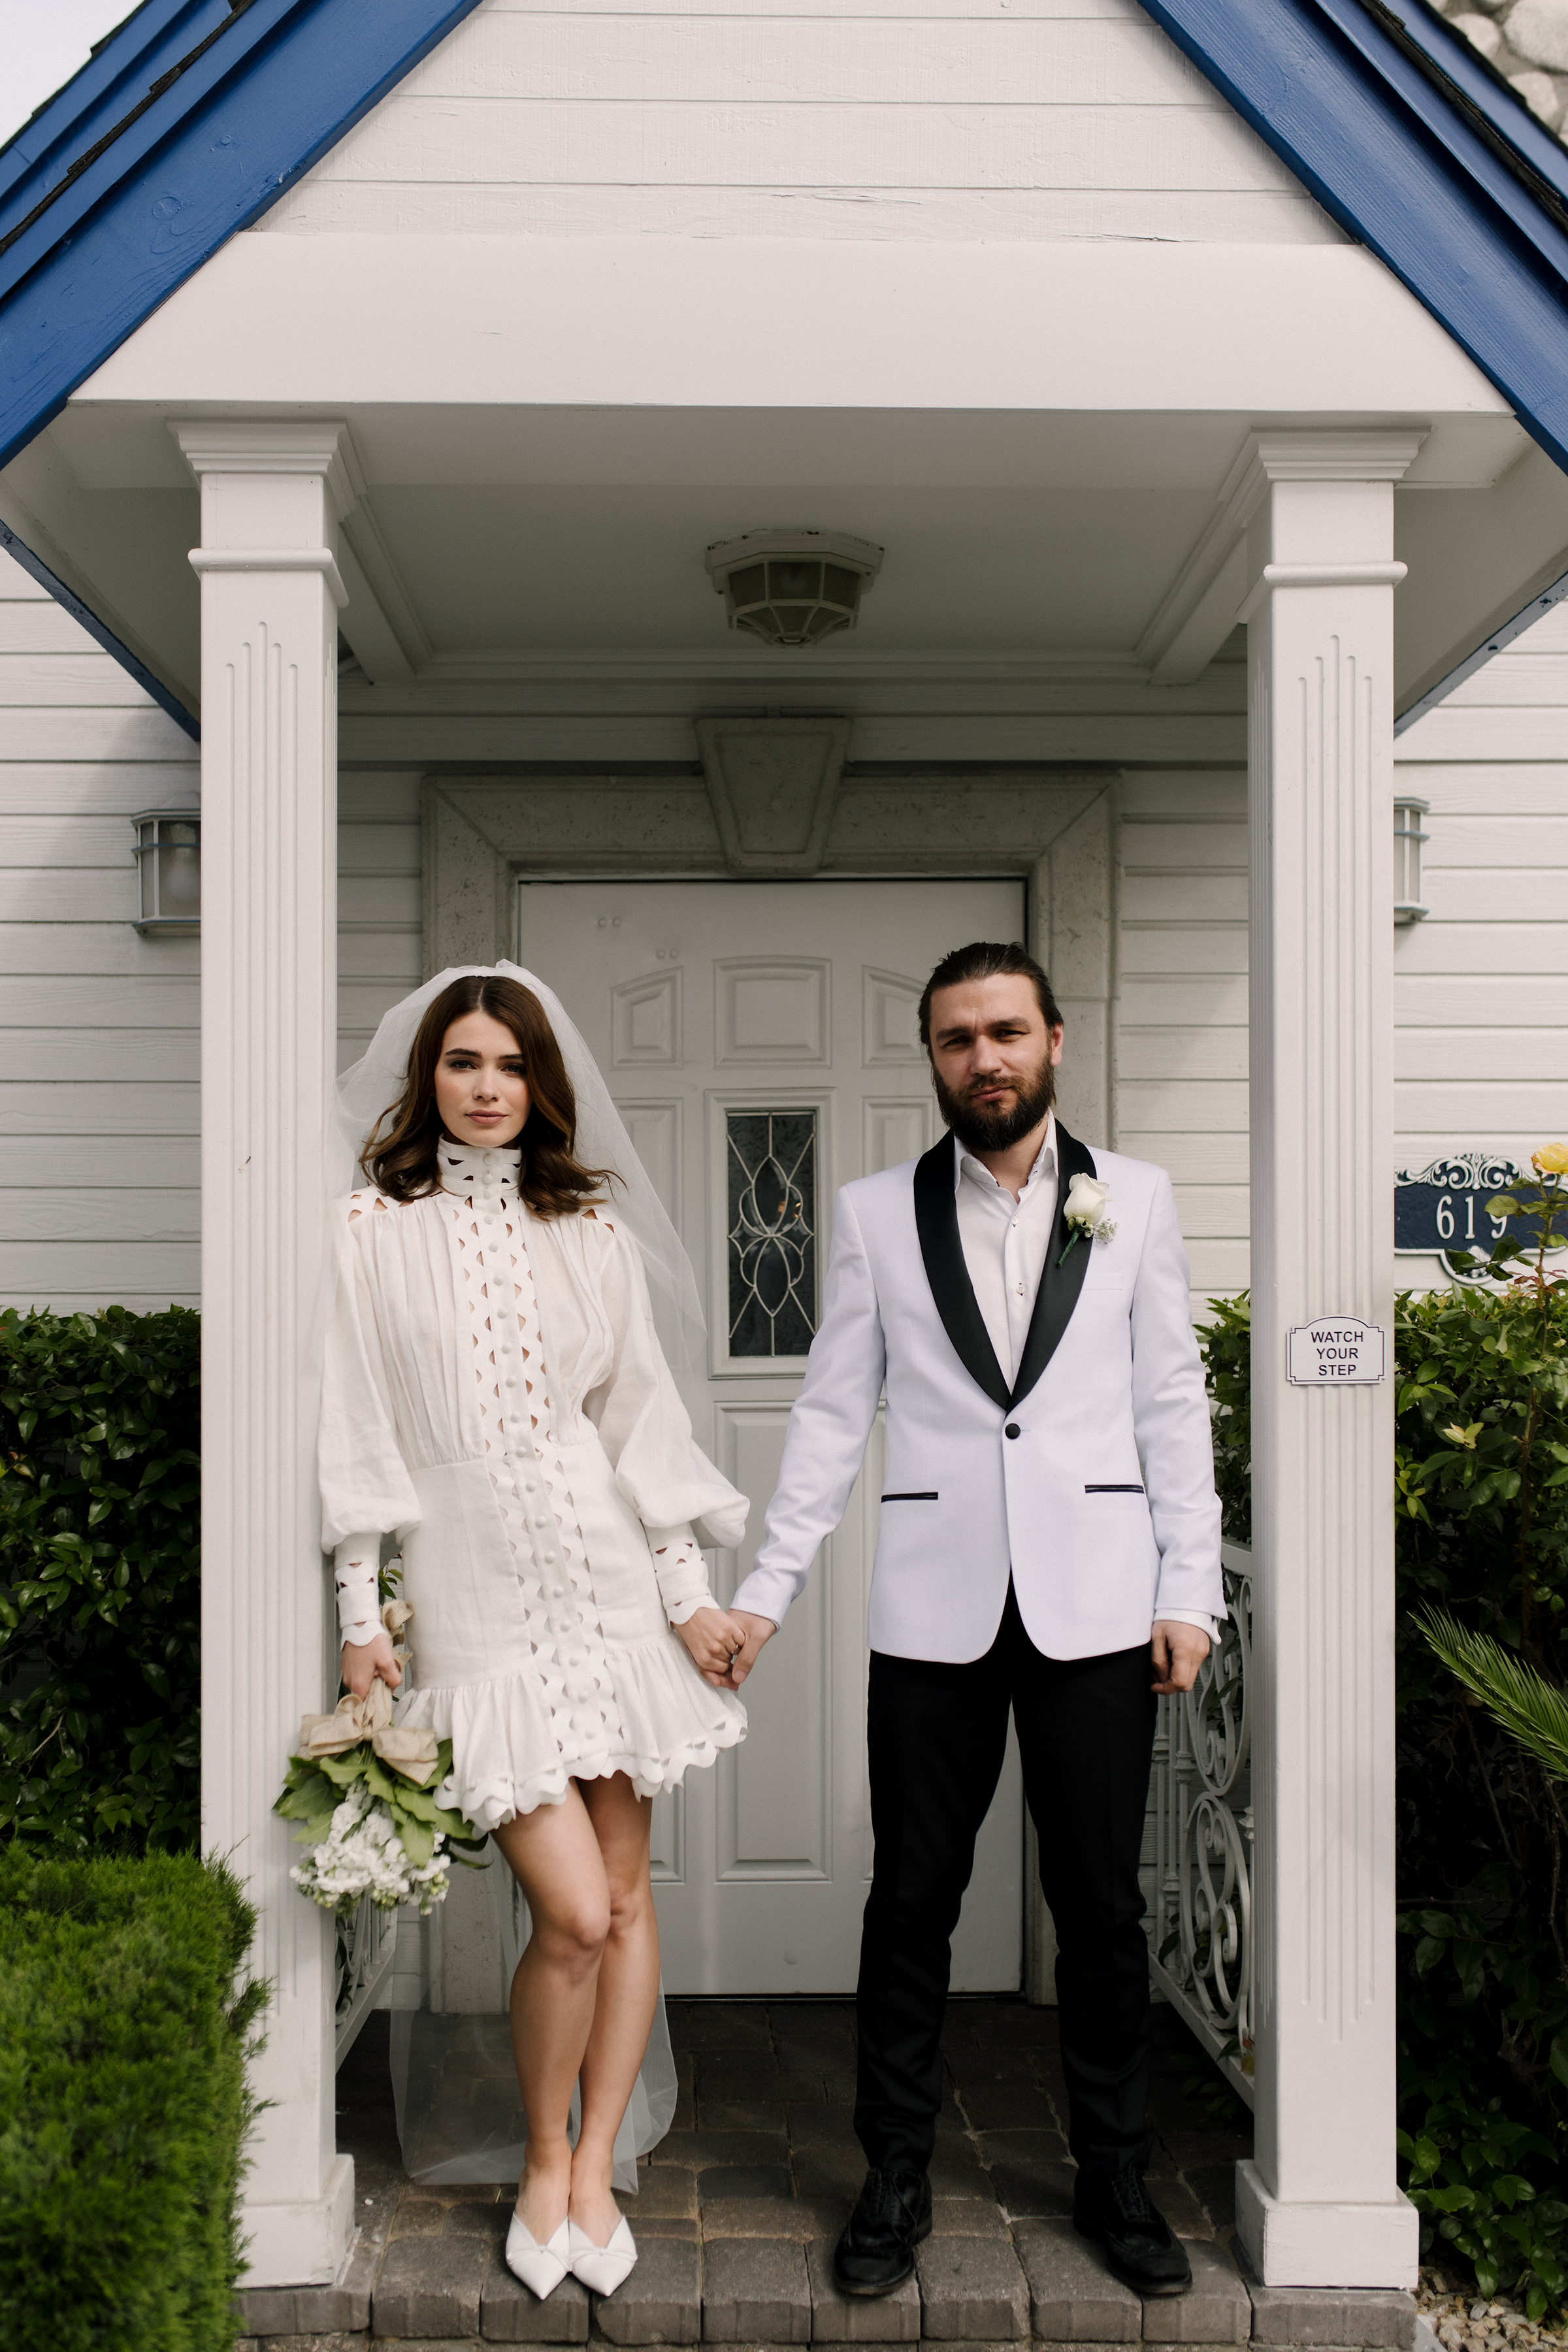 Stylish bride in short wedding dress and groom in Las Vegas wedding by Matei Horvath of Los Angeles